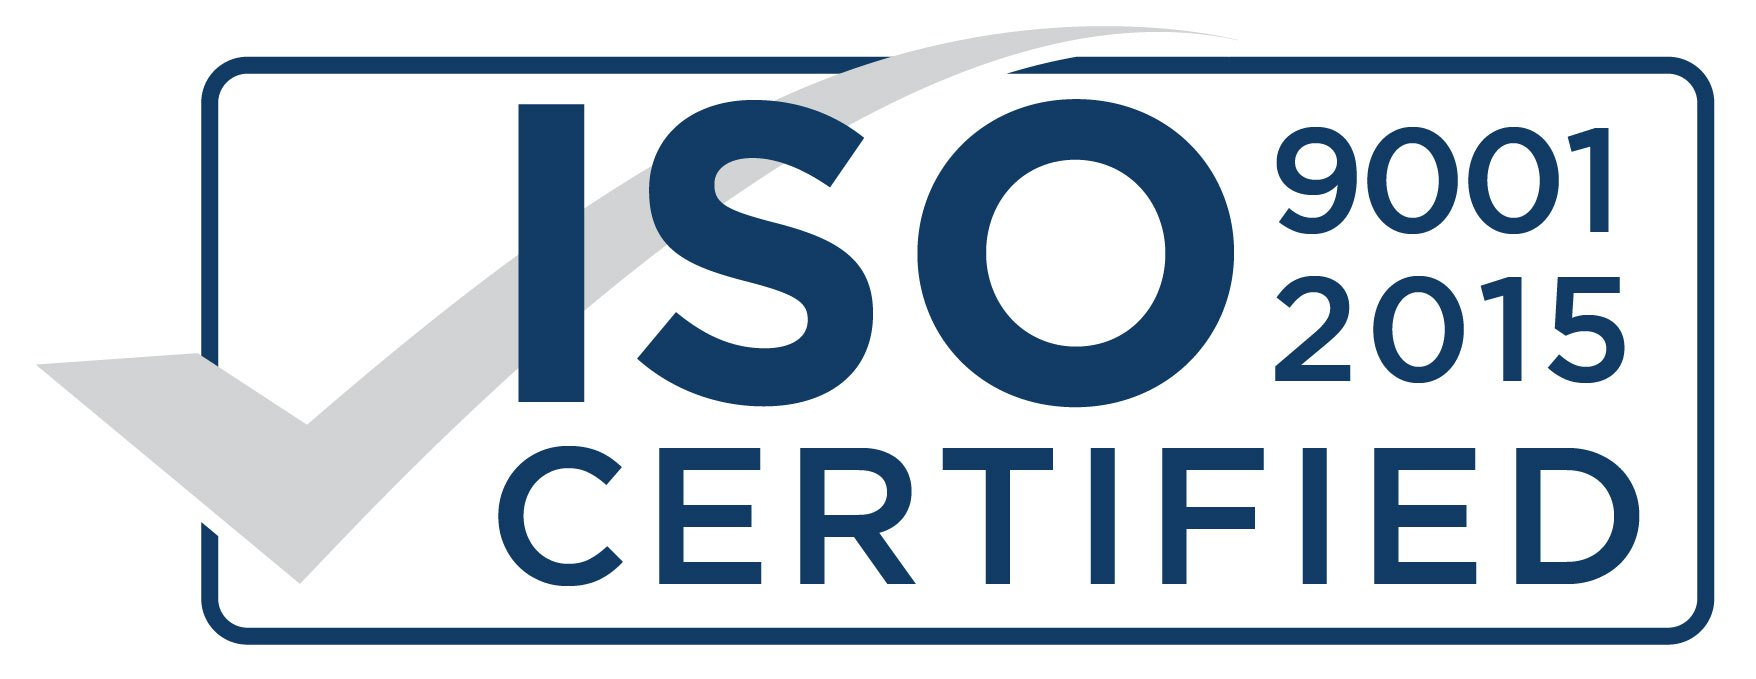 iso 9001 2015 - Interpreting and Documenting ISO 9001:2015